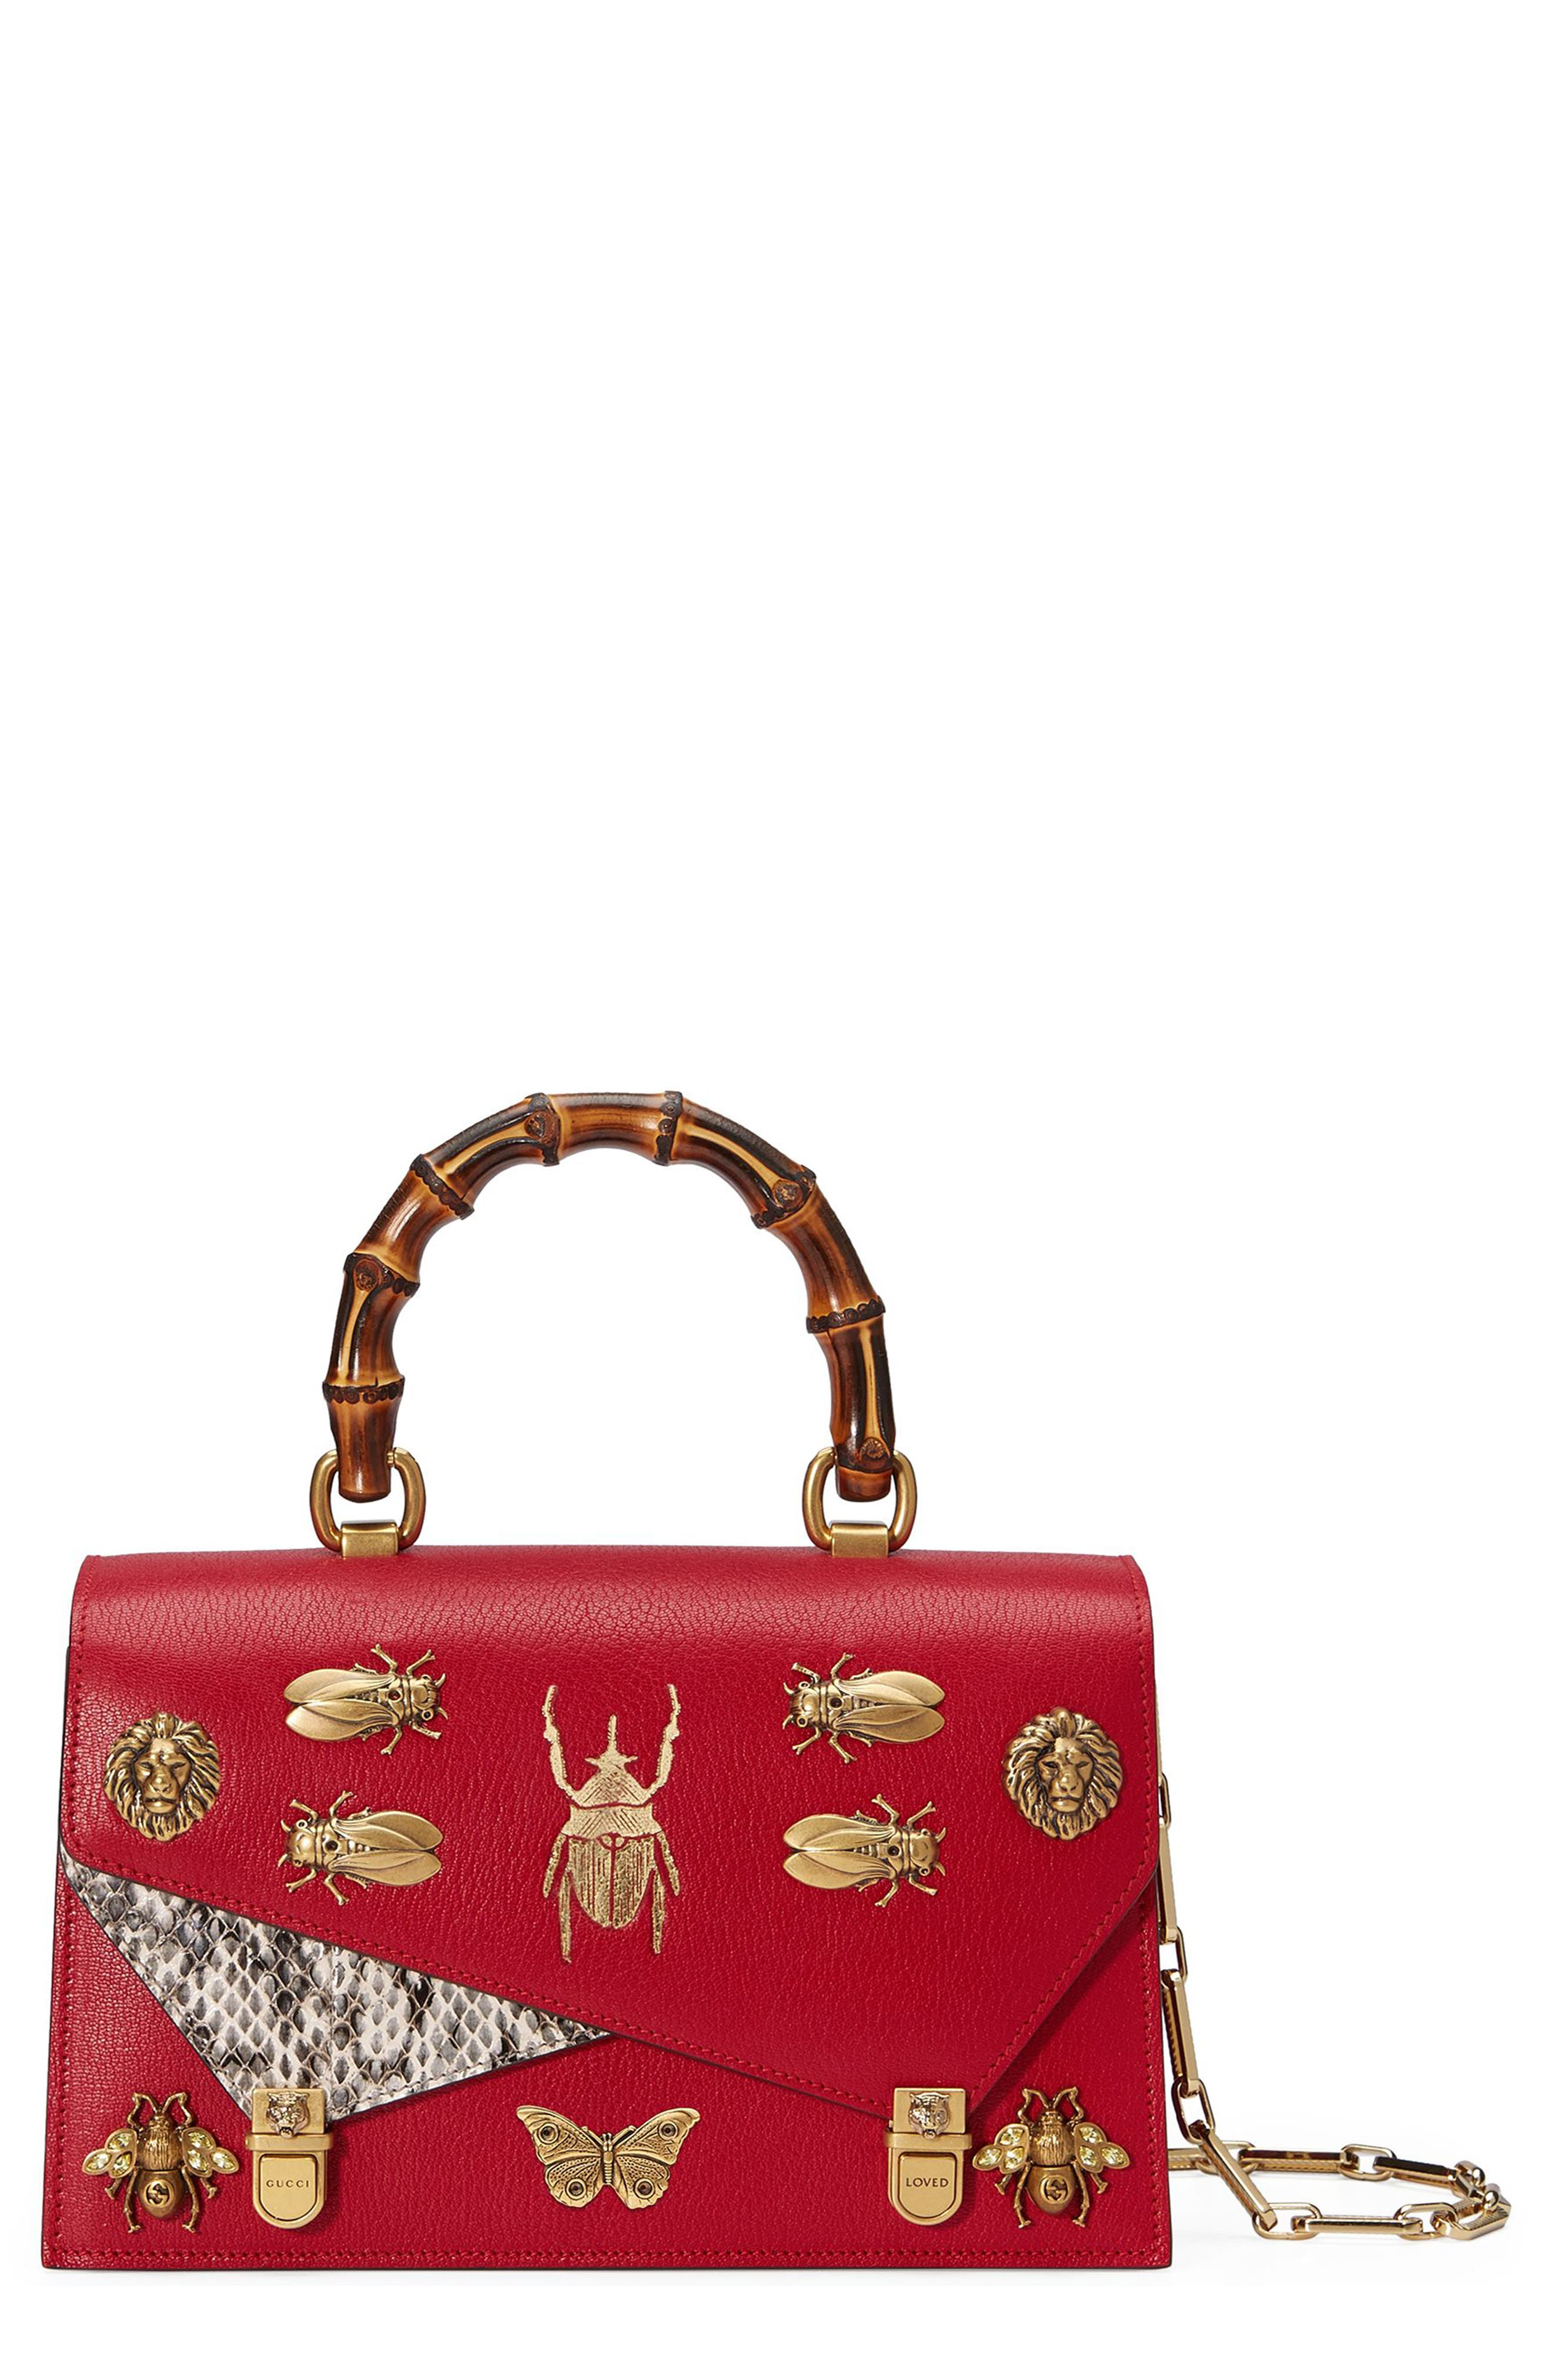 Main Image - Gucci Small Linea P Painted Insects Leather Top Handle Satchel